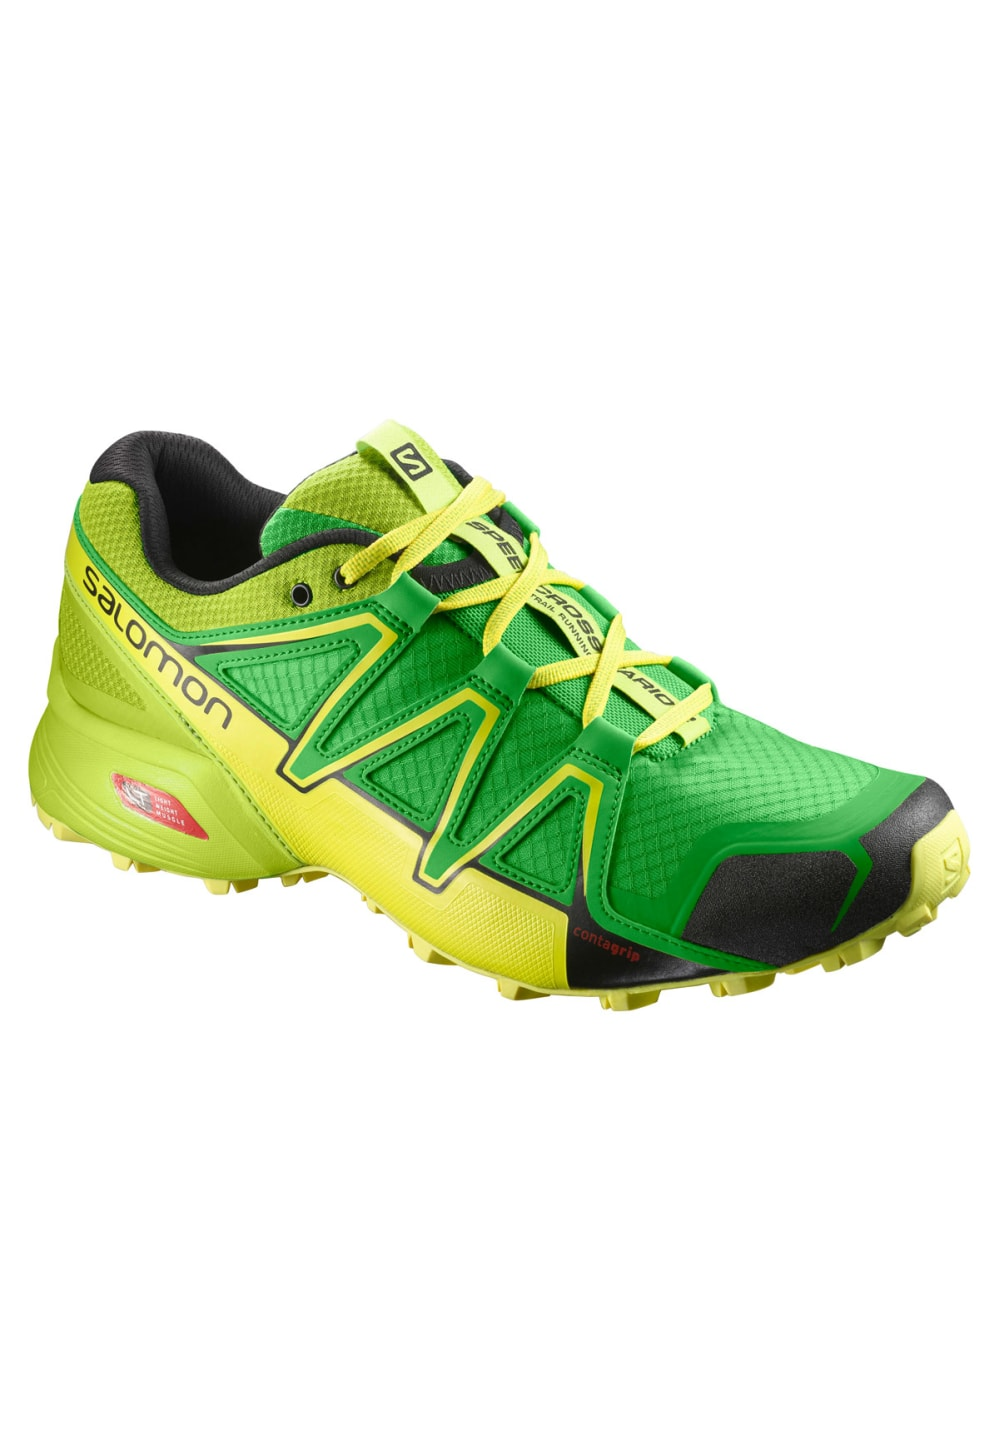 salomon speedcross vario 2 running shoes for men green 21run. Black Bedroom Furniture Sets. Home Design Ideas